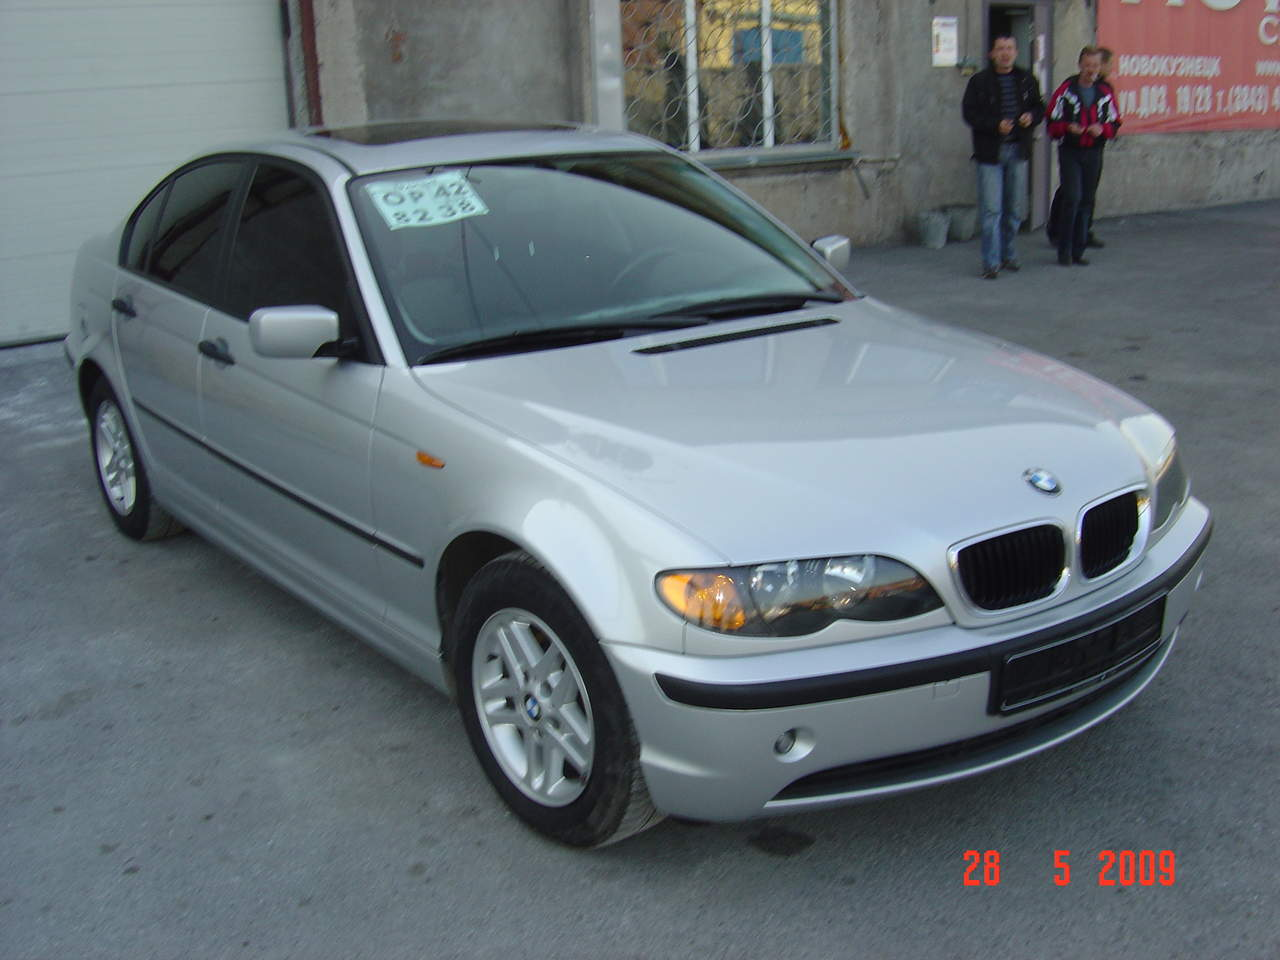 Used 2004 Bmw 3 Series Photos 1800cc Gasoline Fr Or Rr